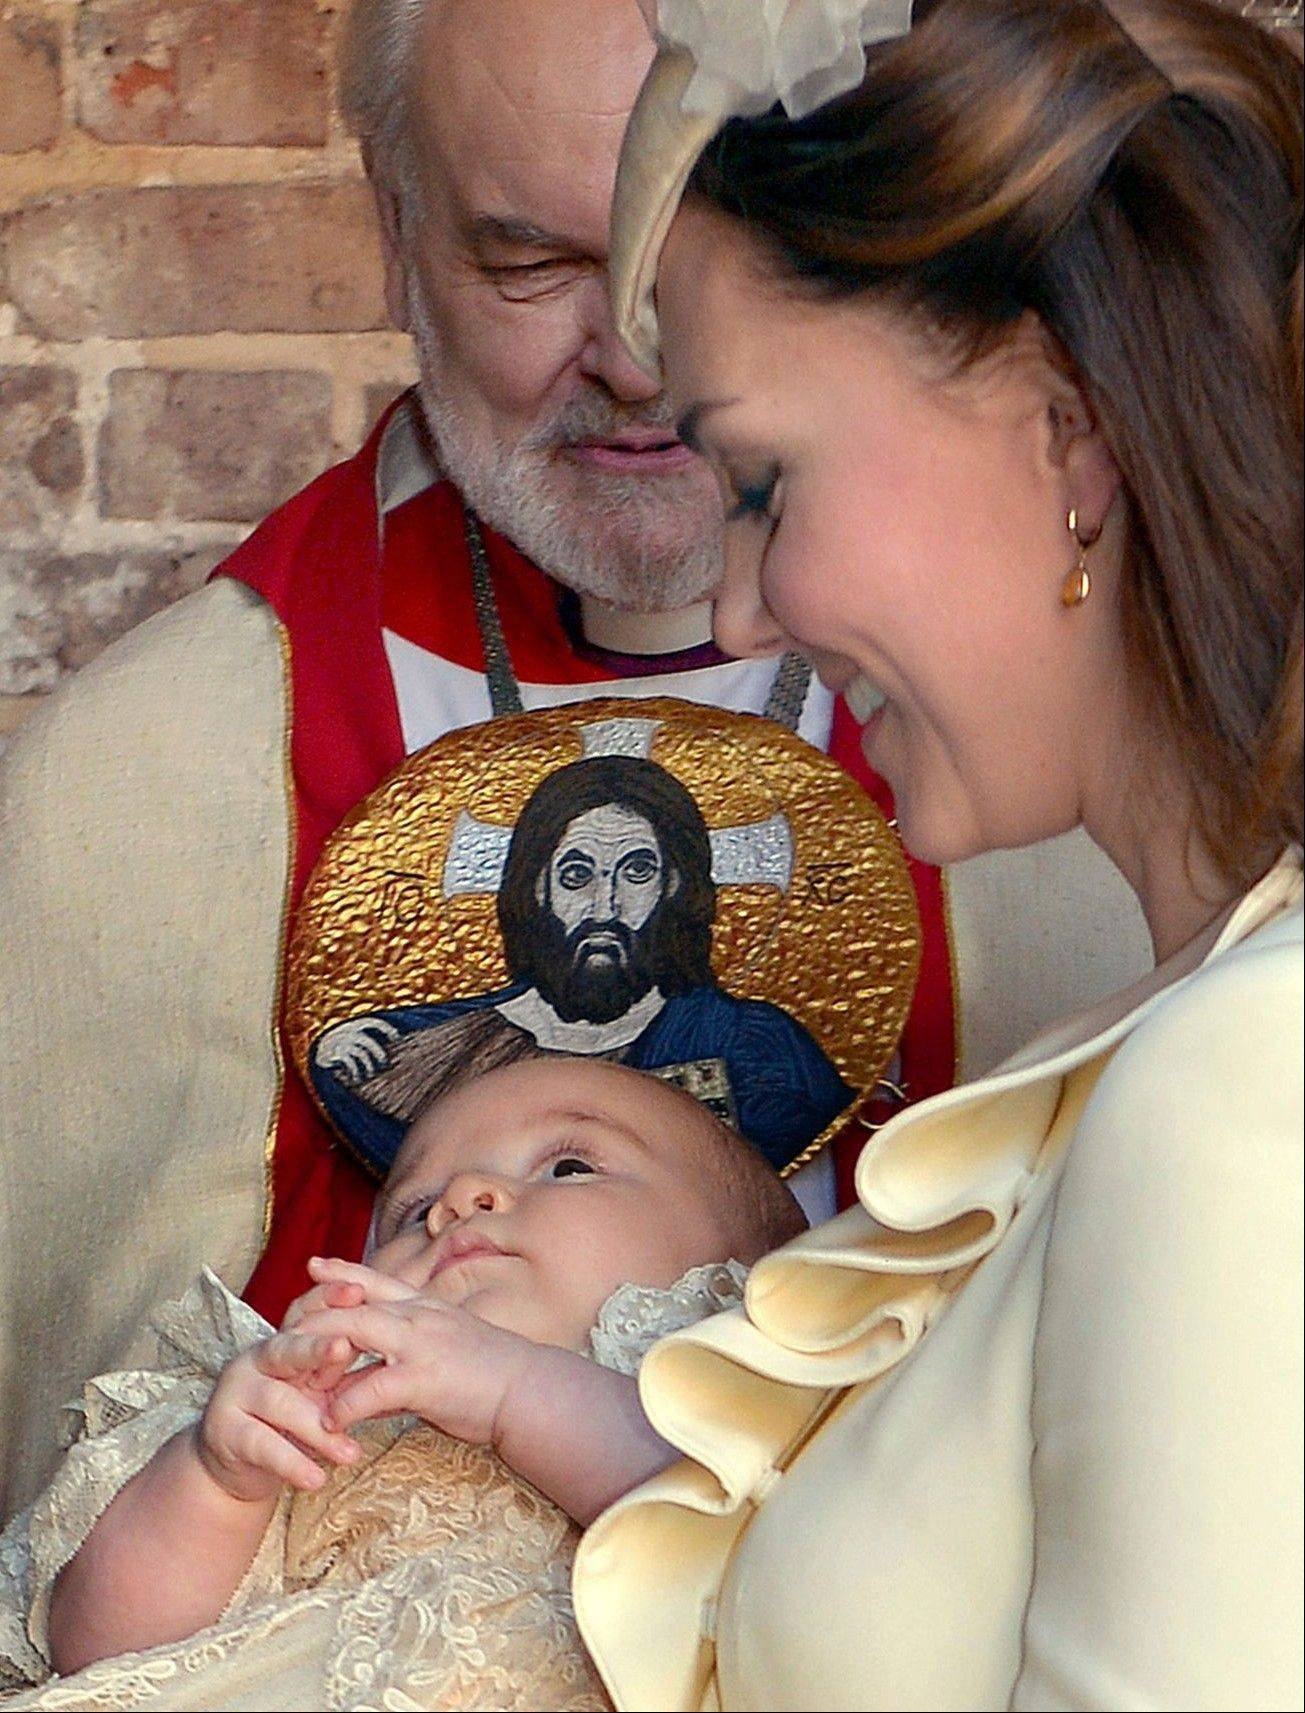 Kate Duchess of Cambridge carries her son Prince George after his christening Wednesday at the Chapel Royal in St James' Palace in London, with the Bishop of London Richard Chartres behind. The prince was christened Wednesday with water from the River Jordan at a rare four-generation gathering of the royal family in London.